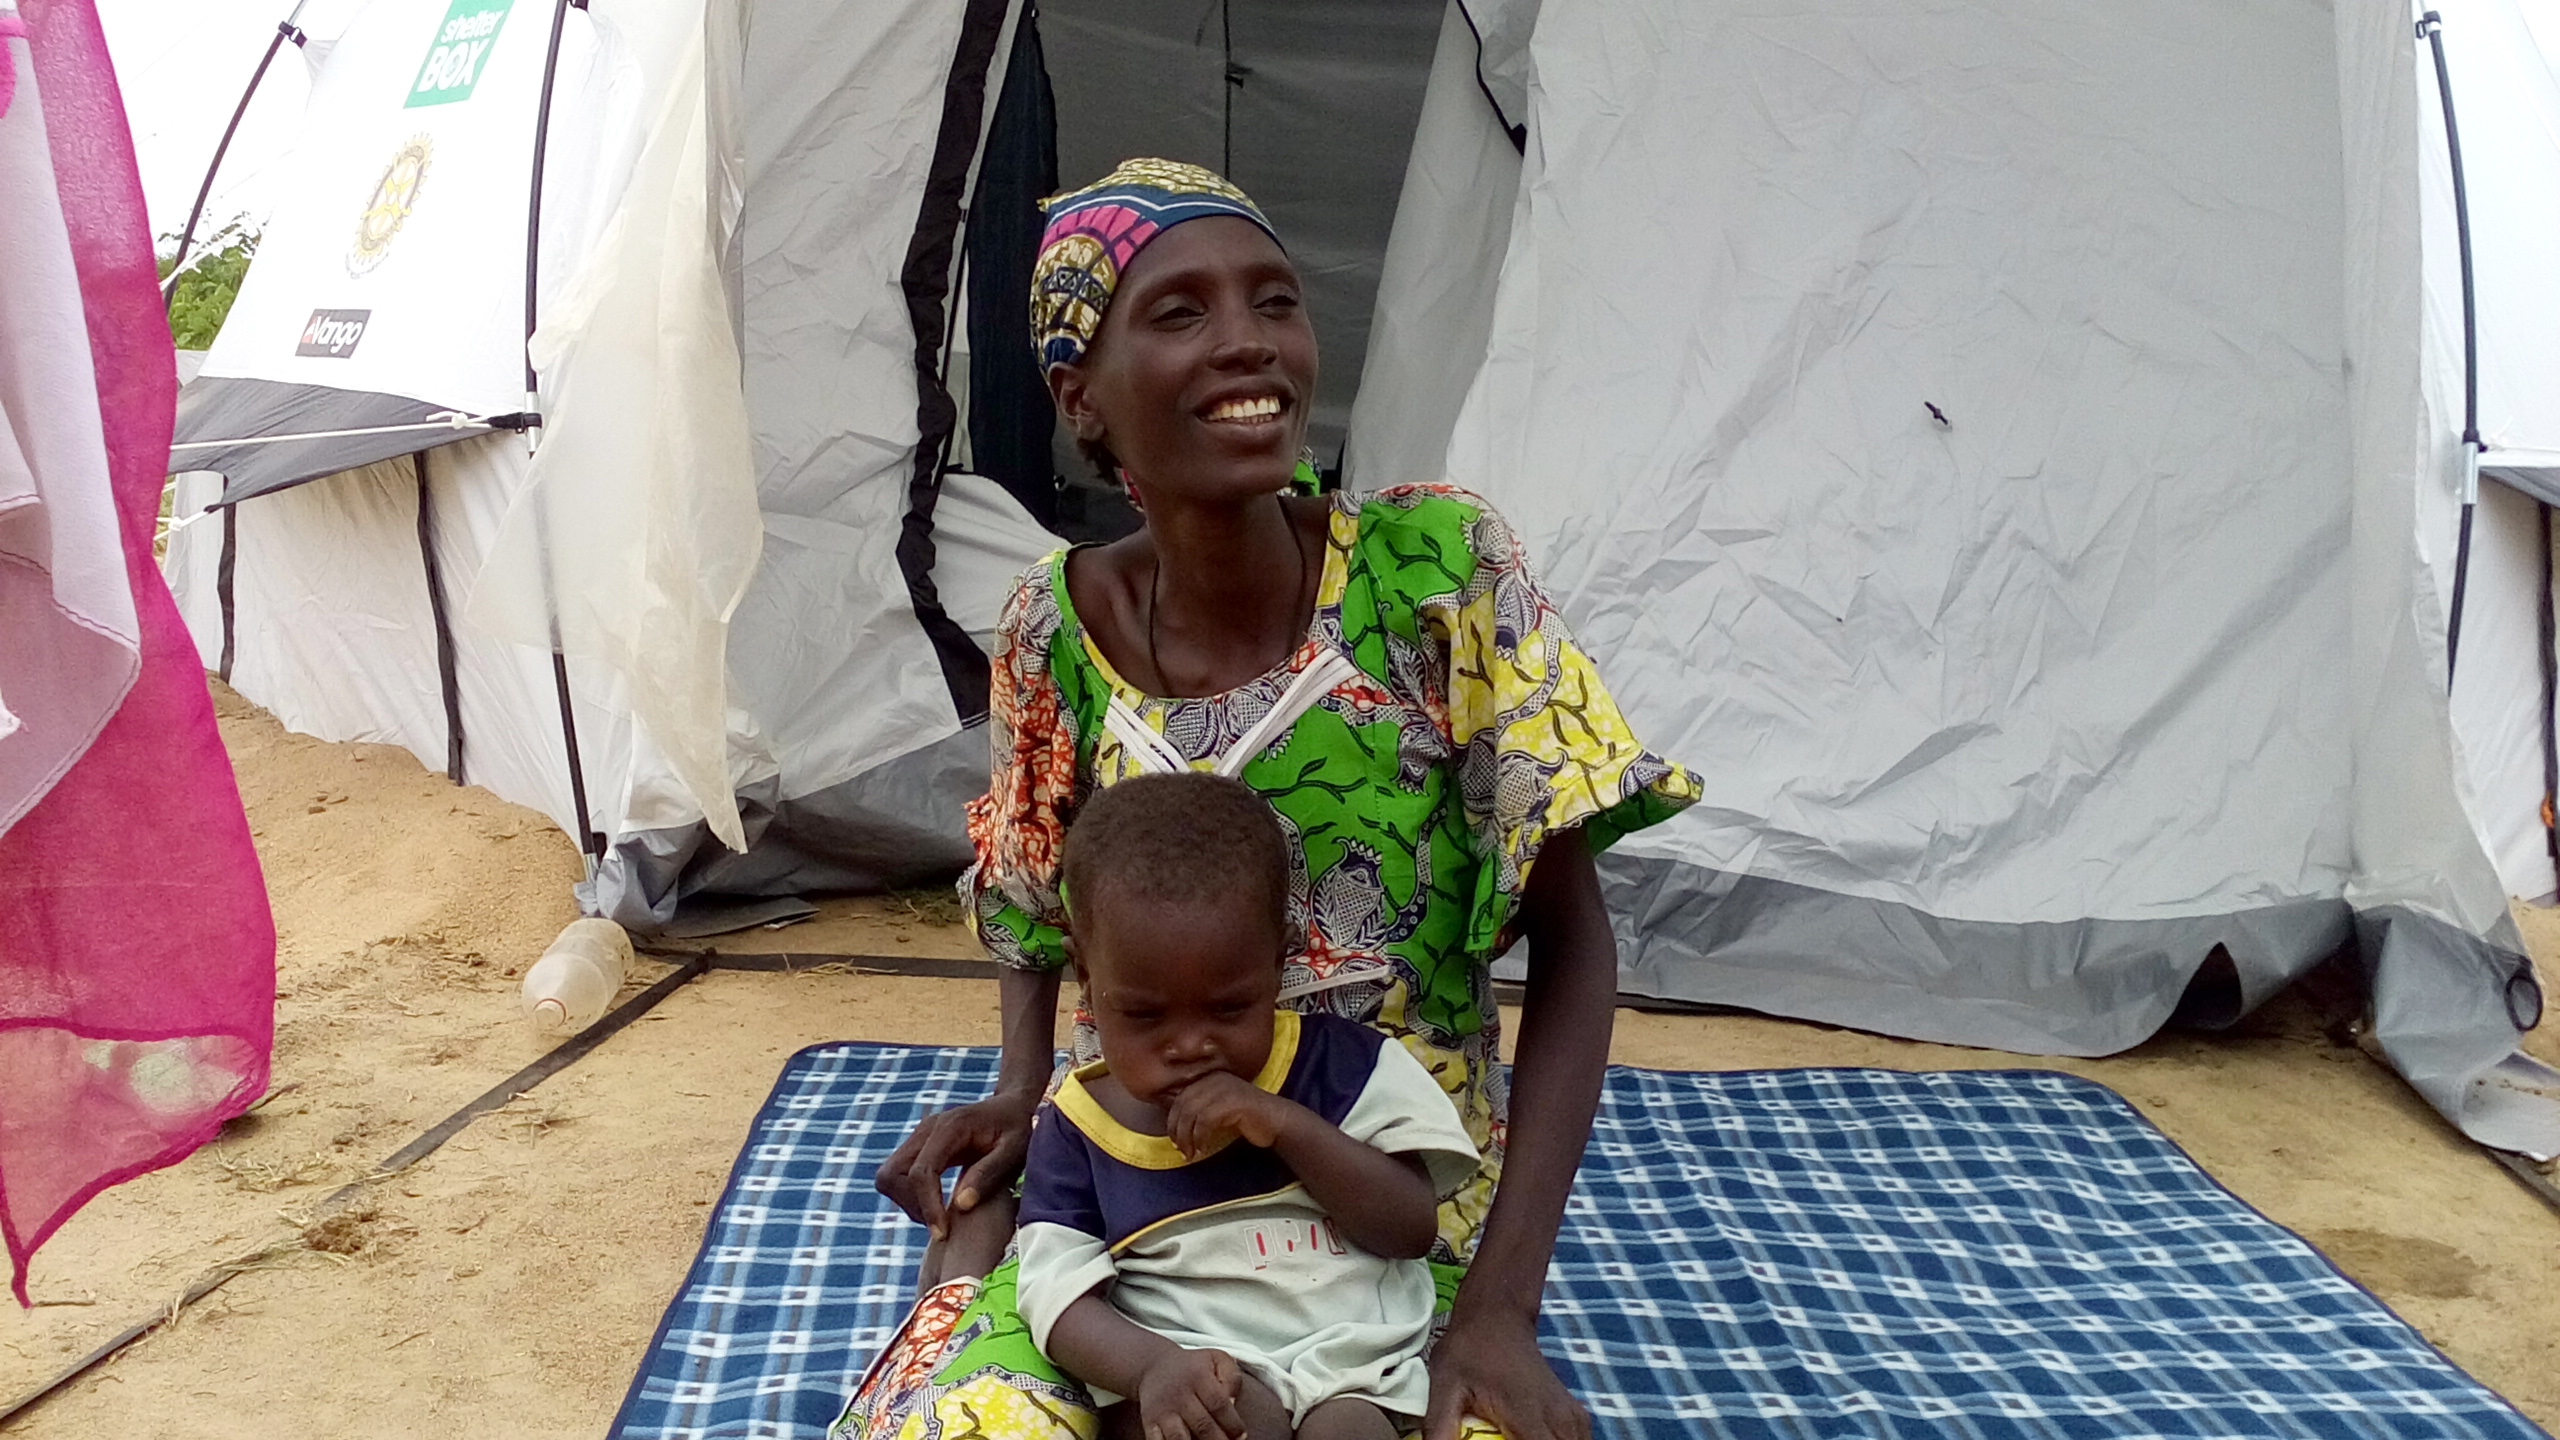 A mother and her child outside their shelter in Cameroon